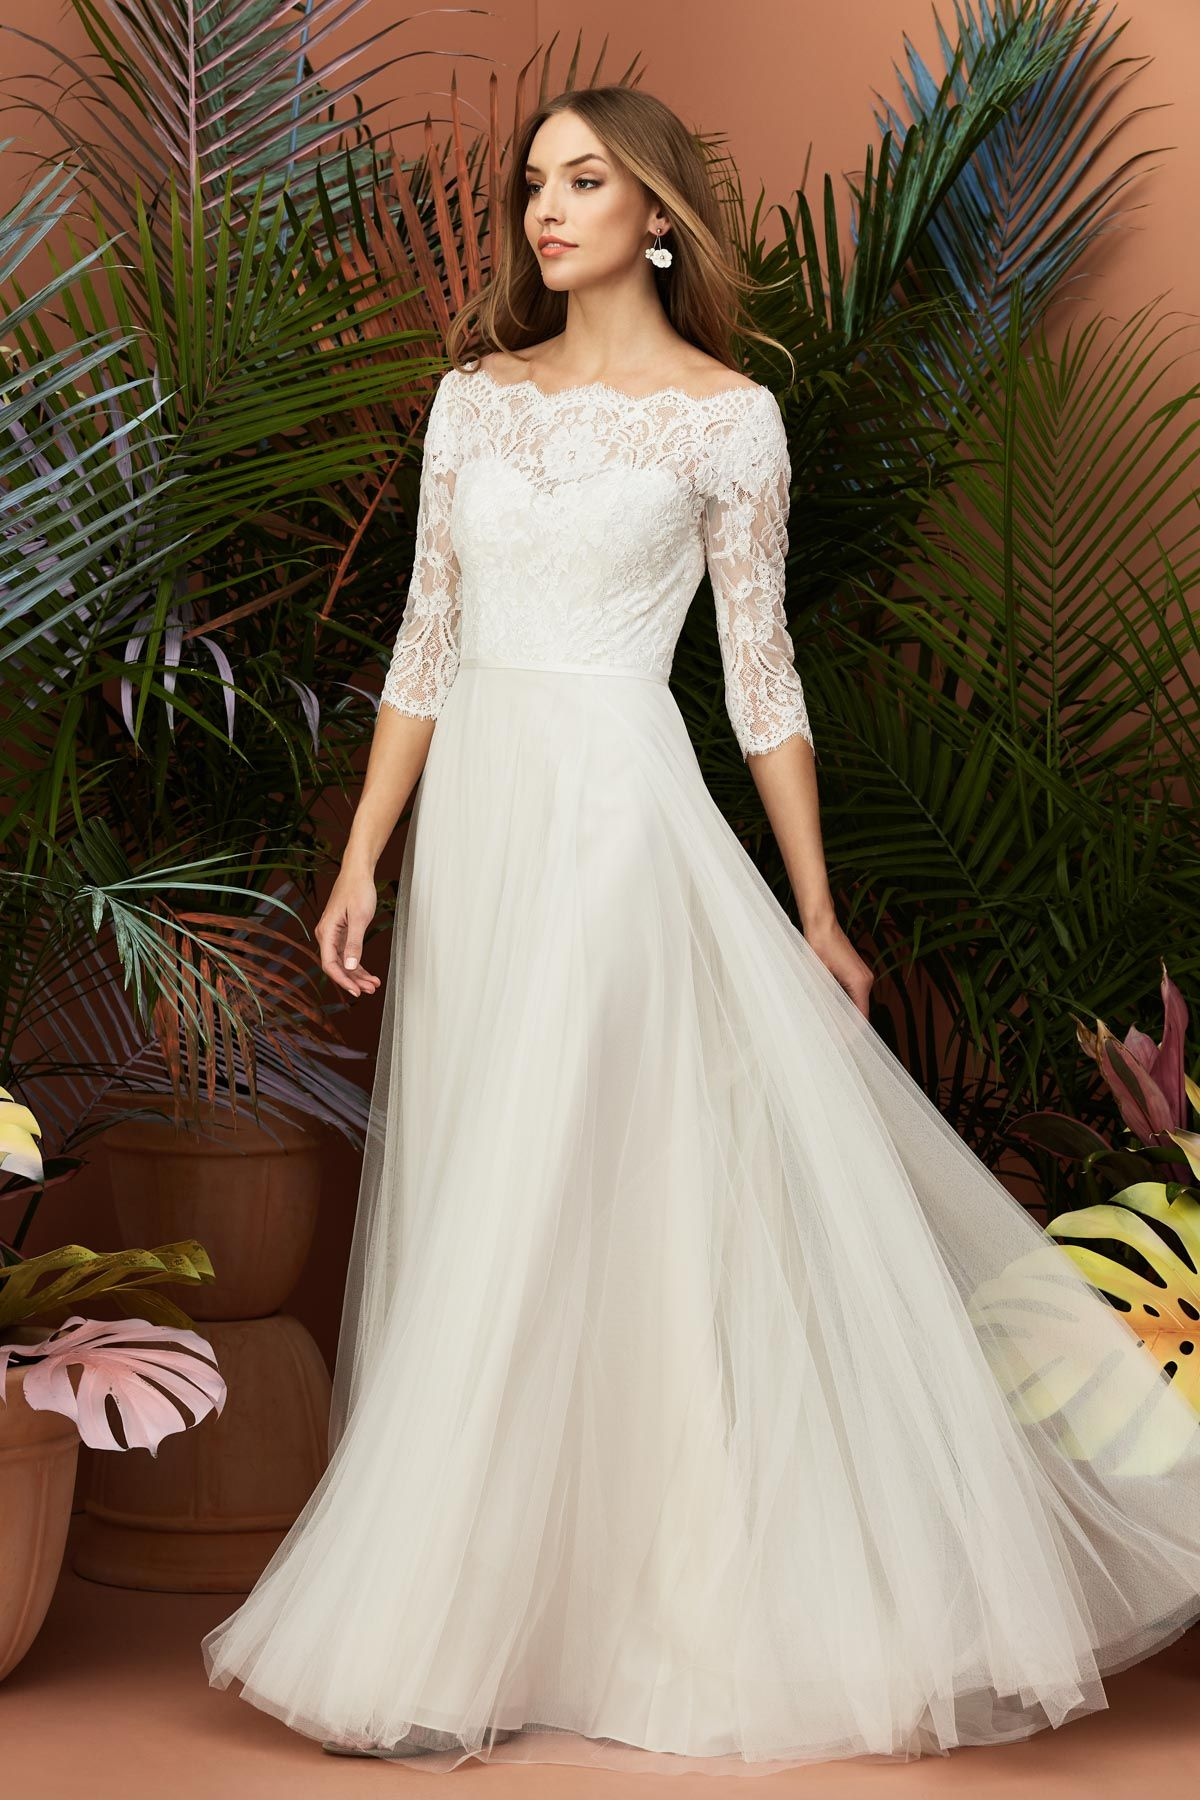 Cecelle 2019 Ivory Long A-line Modest Chiffon Wedding Dresses With Cap Sleeves V Neck Buttons Back Beaded Reception Bridal Gowns Wedding Dresses